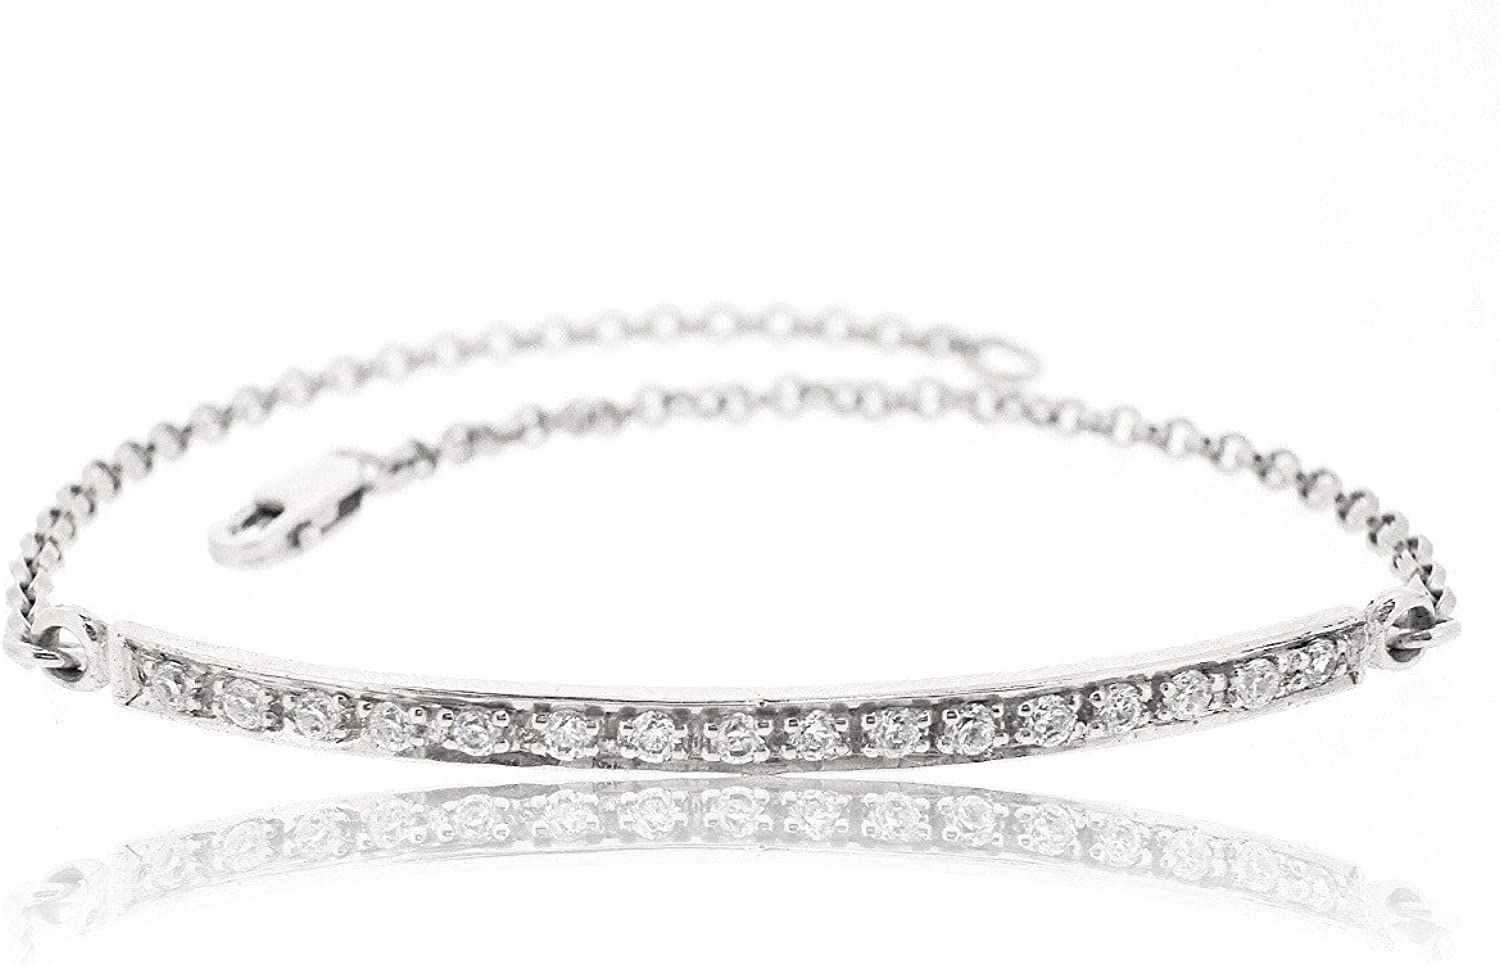 Sovats Bar Chain Bracelet For Women Set With White Cubic Zirconia 925 Sterling Silver Rhodium Plated  Simple, Stylish &Trendy Nickel Free Bracelet